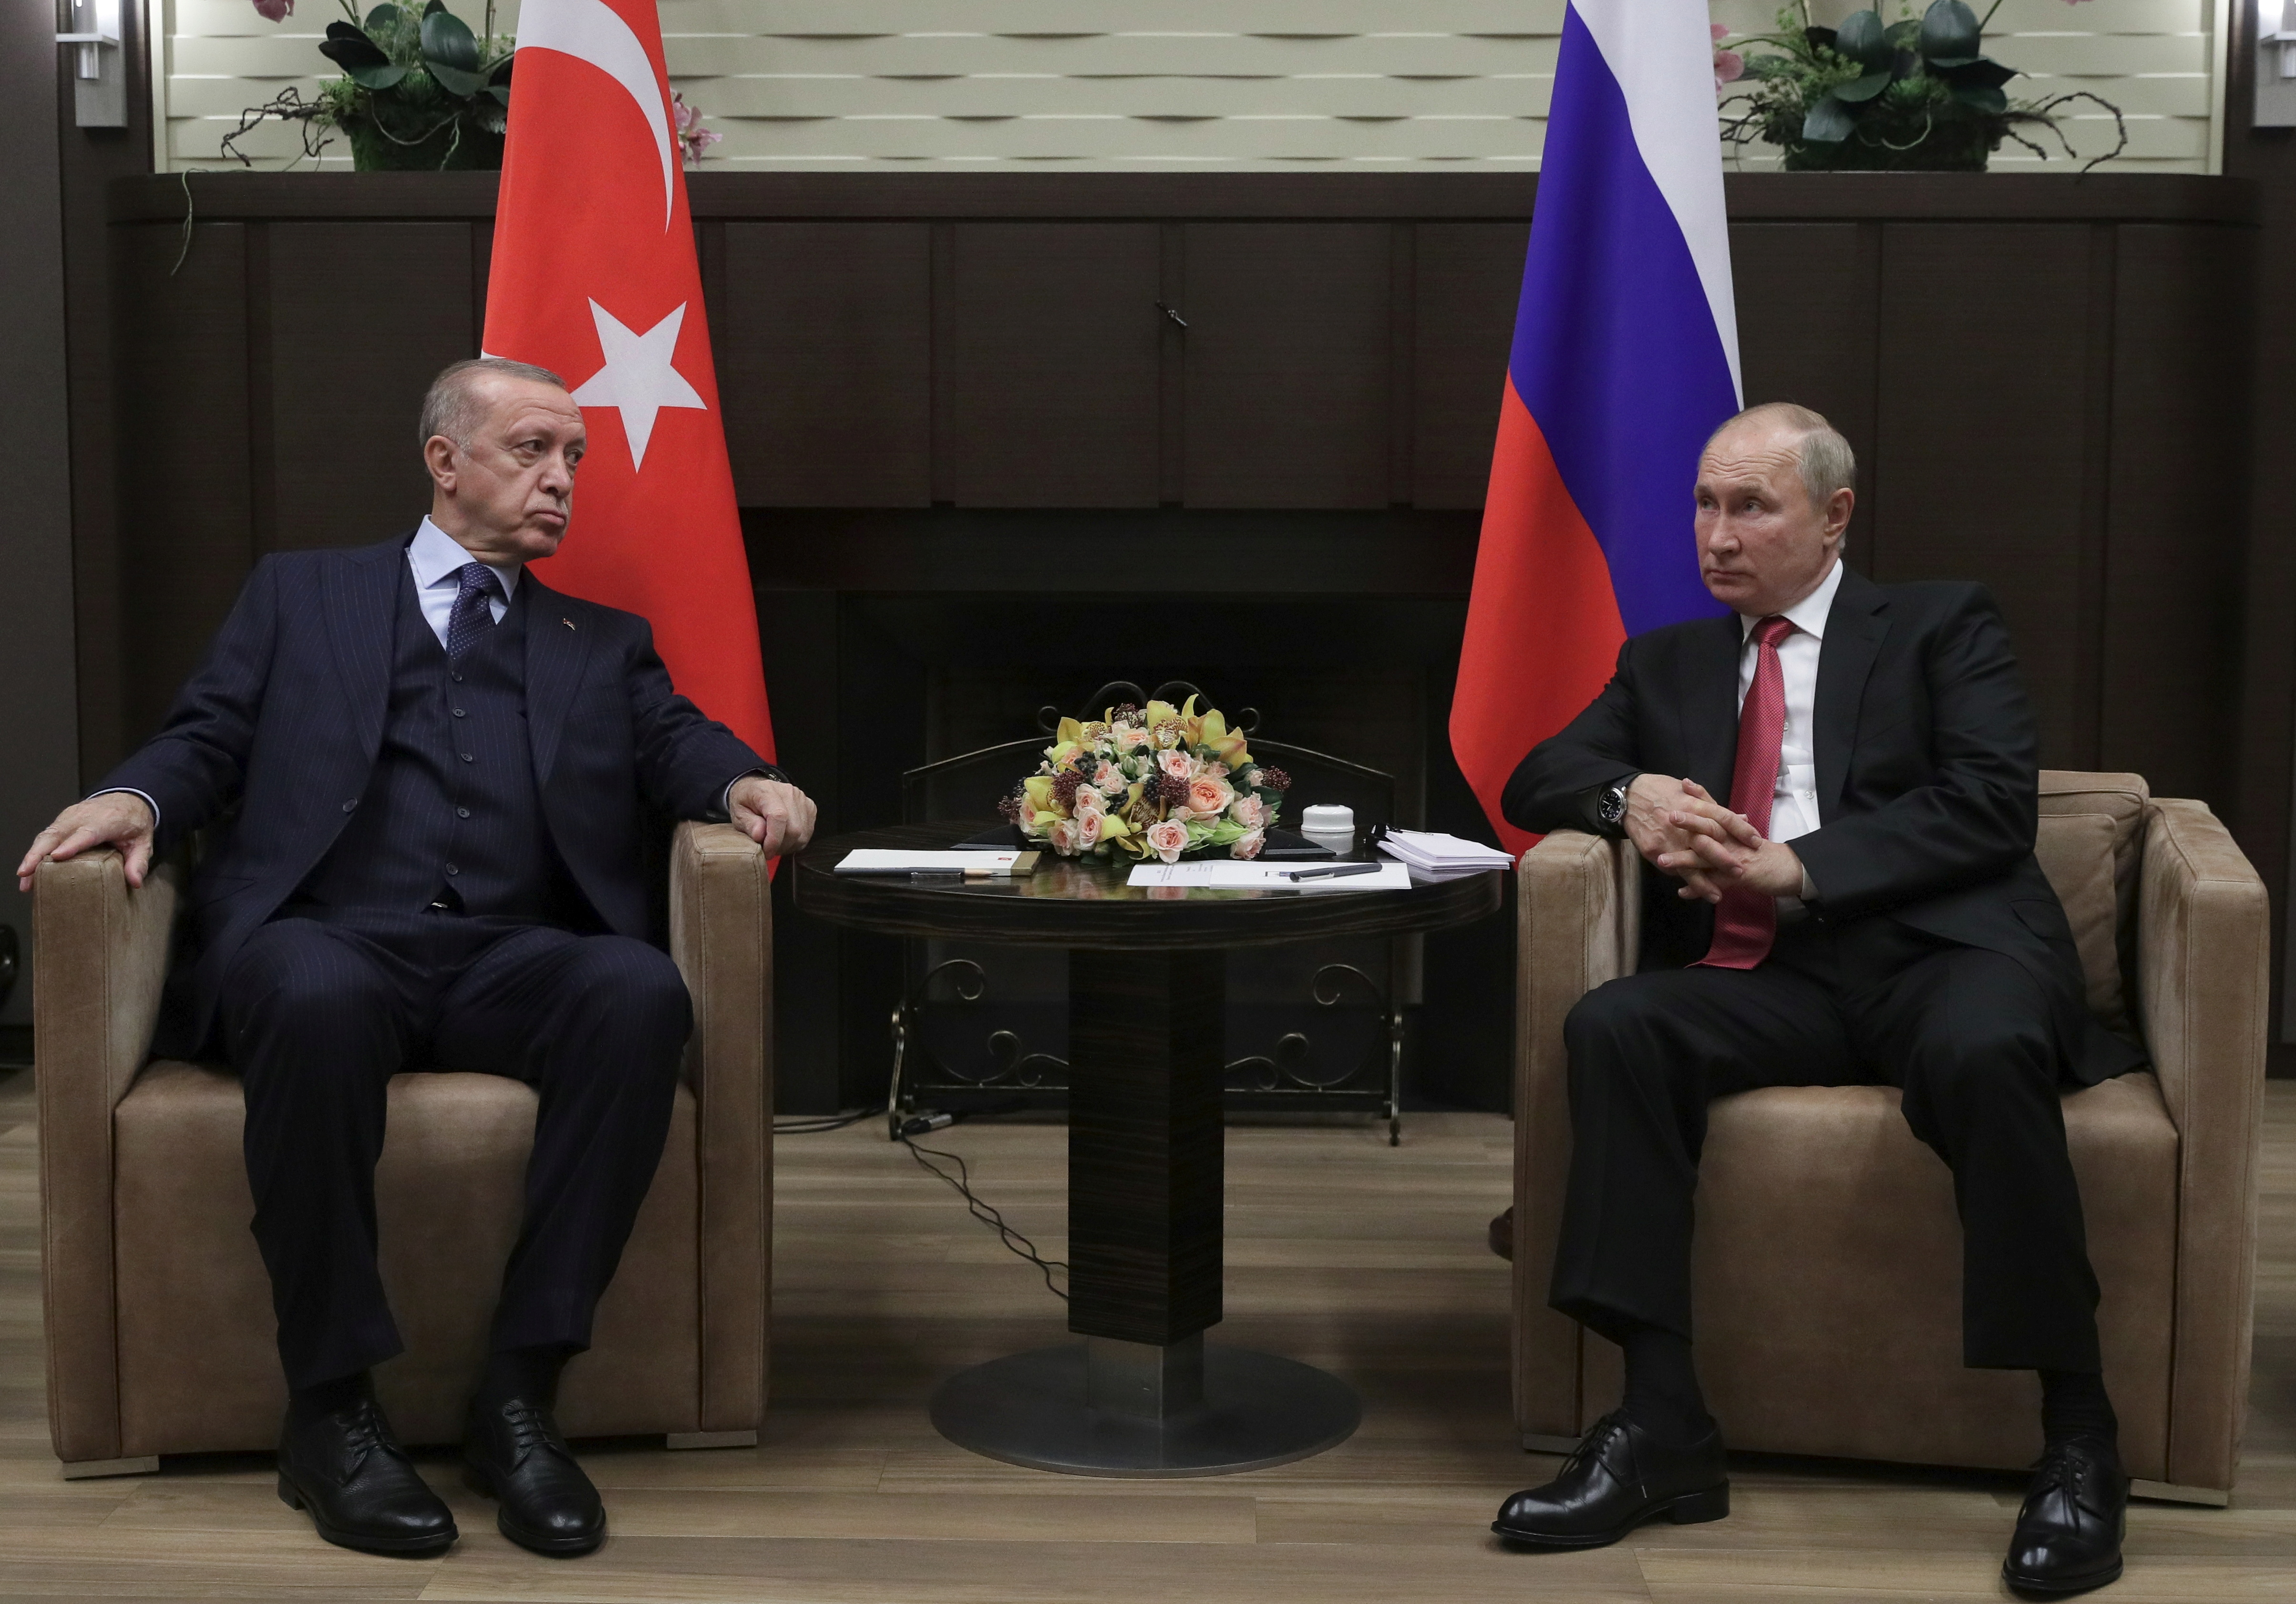 Russian President Vladimir Putin attends a meeting with Turkish President Tayyip Erdogan in Sochi, Russia September 29, 2021. Sputnik/Vladimir Smirnov/Pool via REUTERS  ATTENTION EDITORS - THIS IMAGE WAS PROVIDED BY A THIRD PARTY.